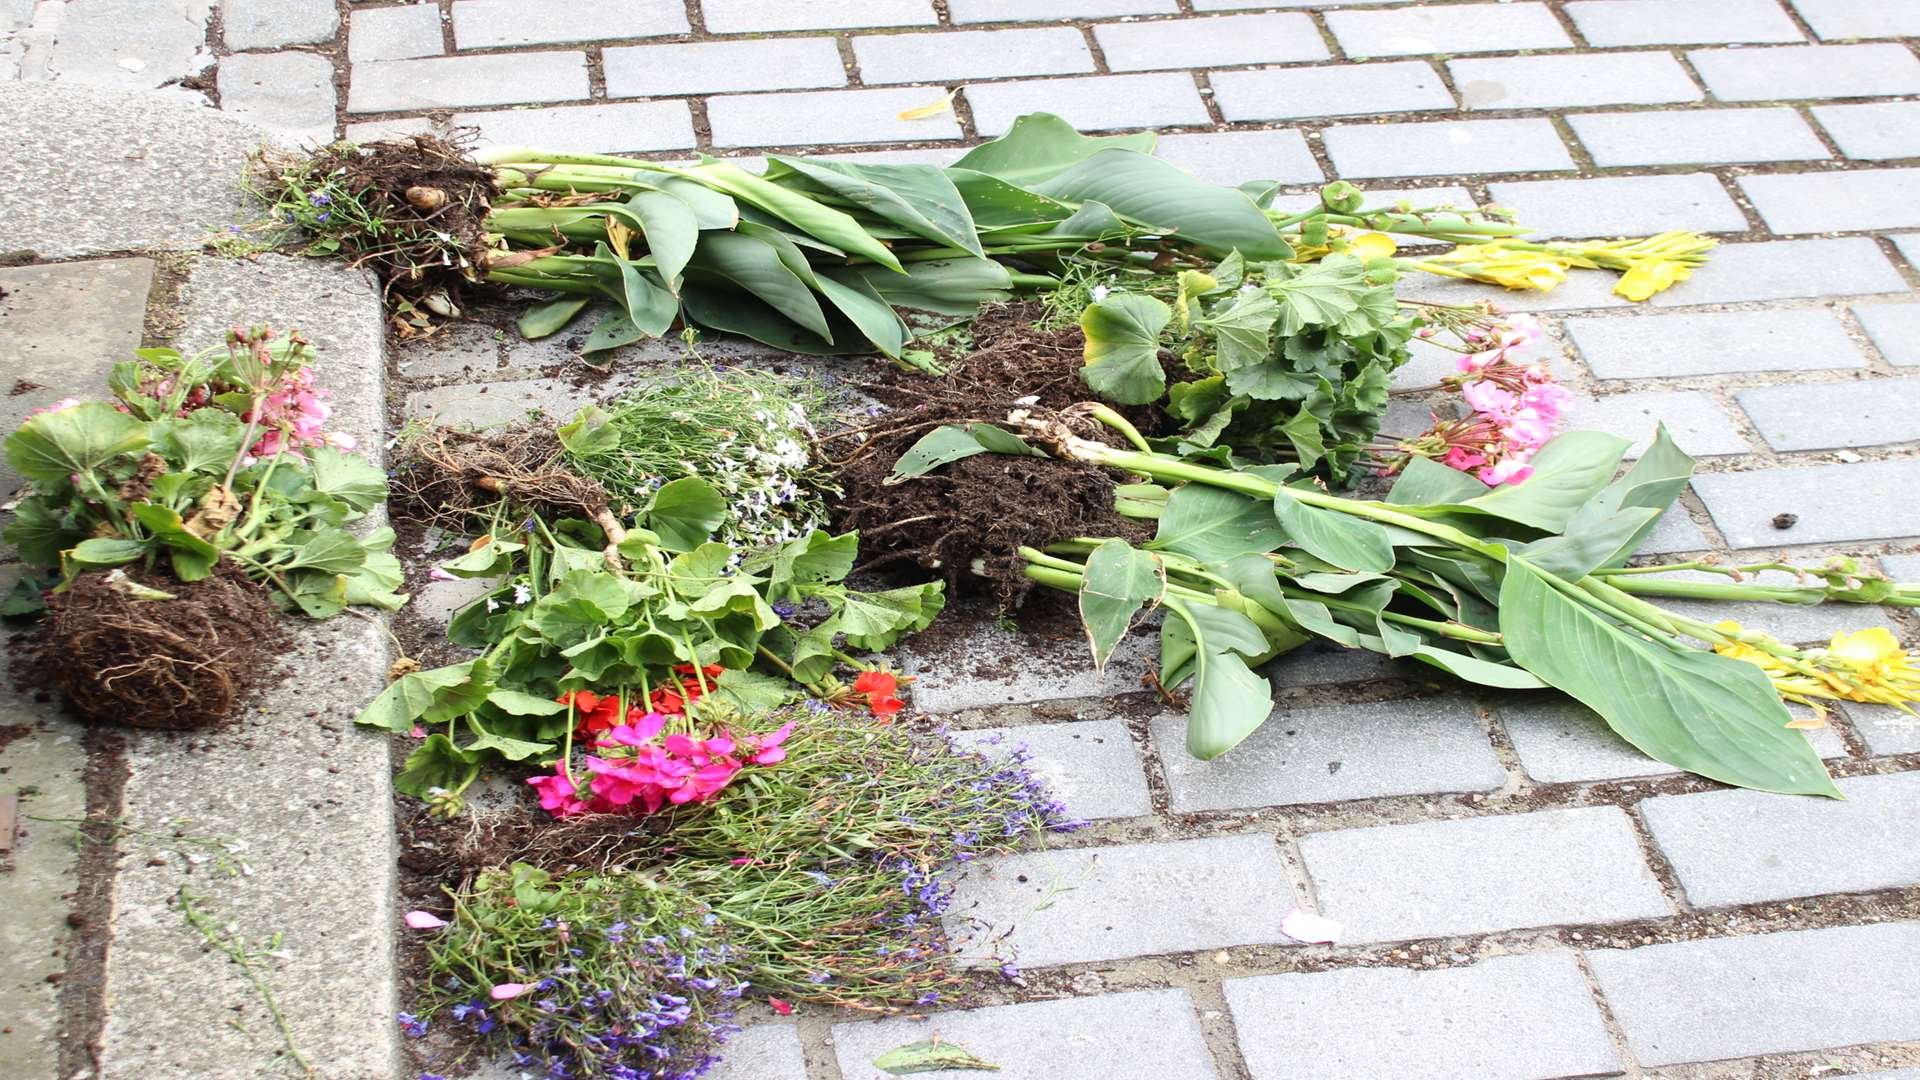 Flowers strewn across the road